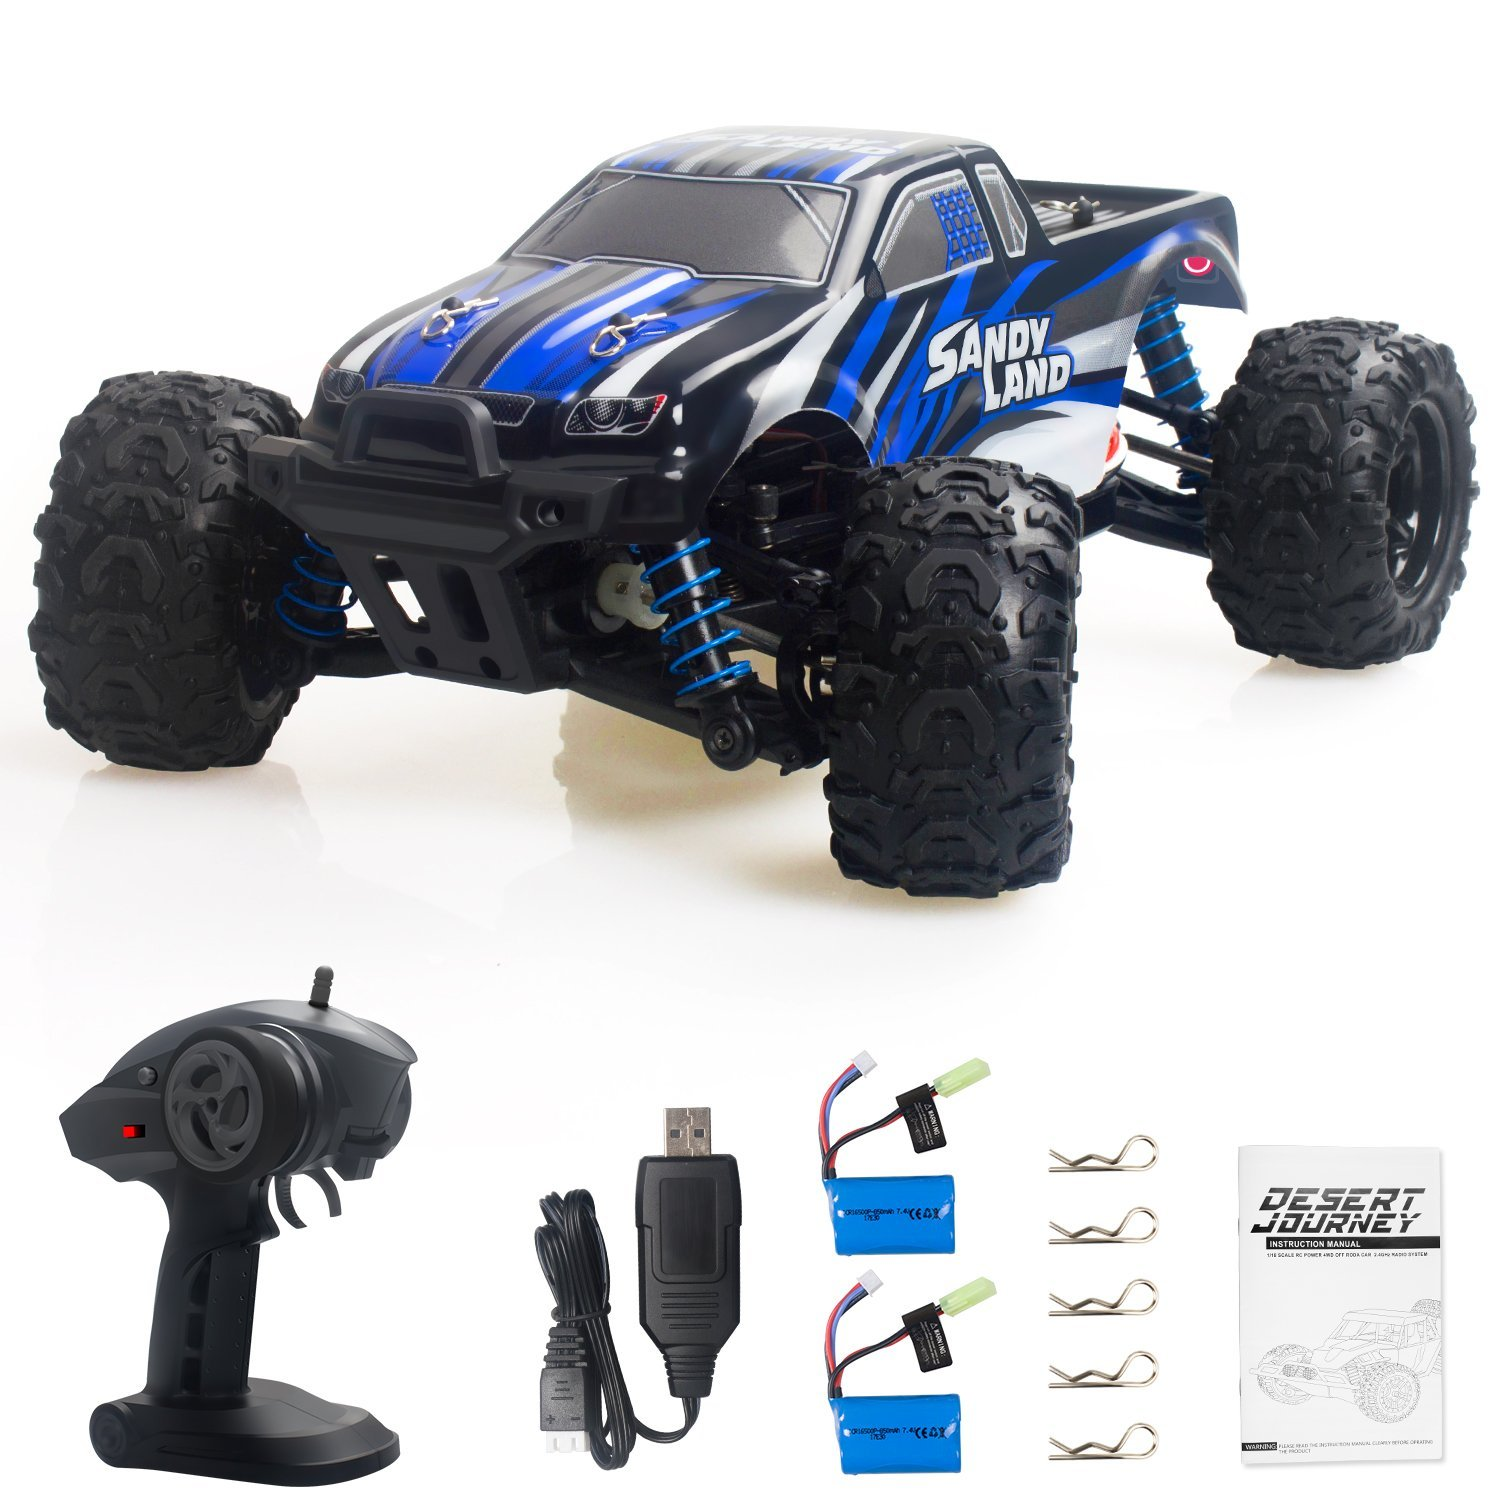 Get 10$ off  fro Terrain Electric Remote Control Off Road Monster Truck 1:18 Scale 2.4Ghz Radio 4WD Fast 30+  Only 149.99$ with code  MT118+